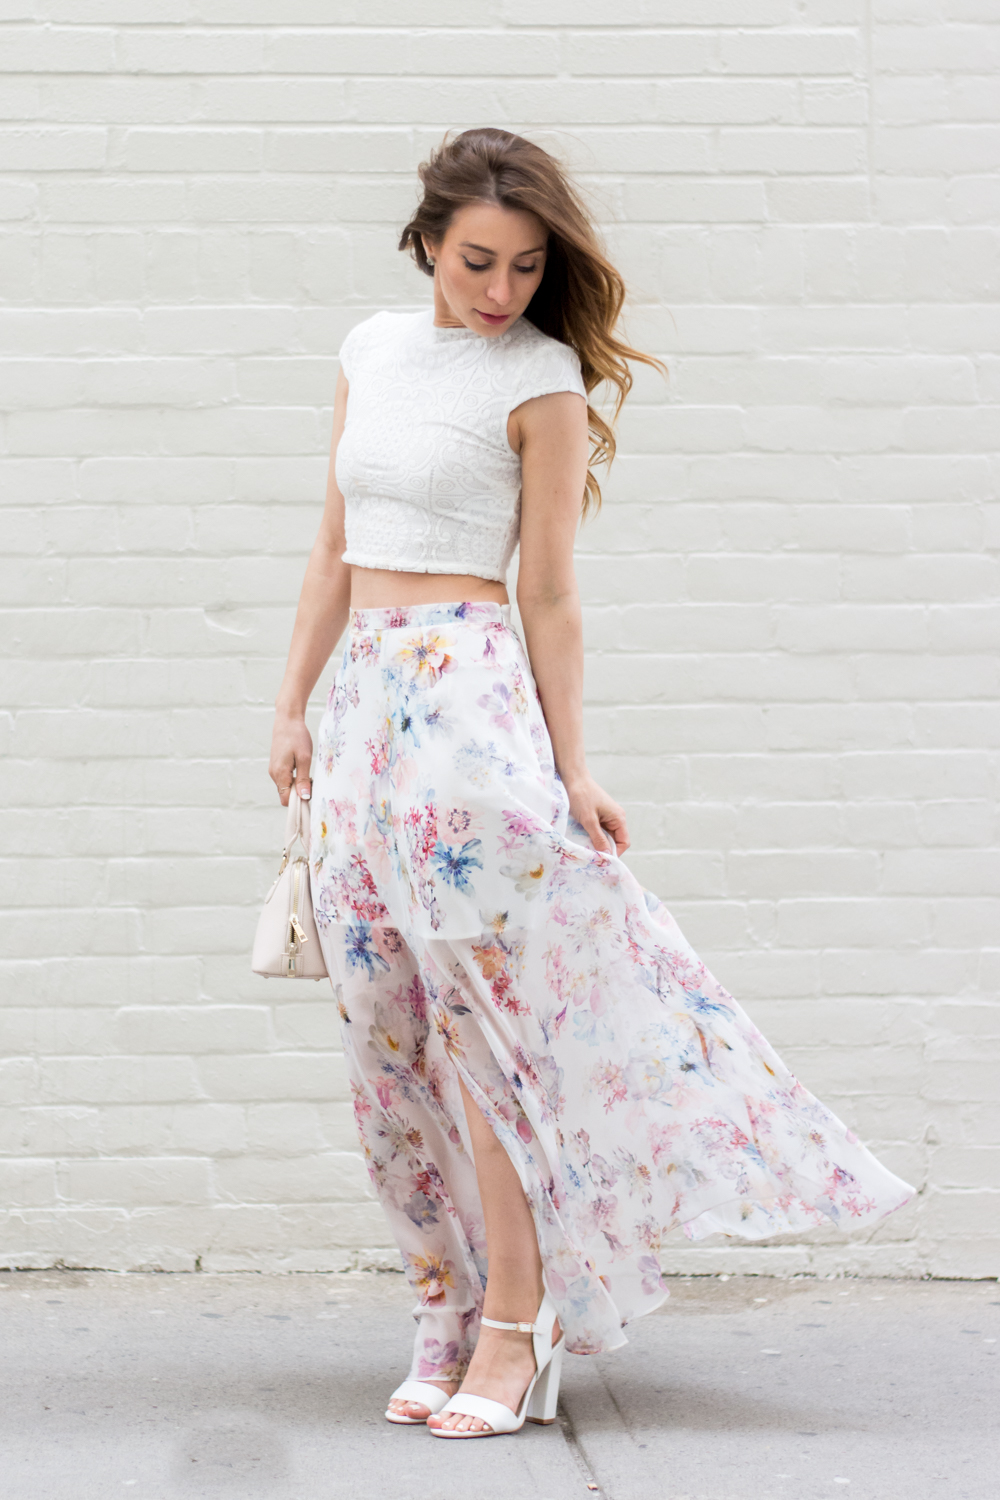 OOTD - Floral Maxi Skirt With Ever New | La Petite Noob | A ...